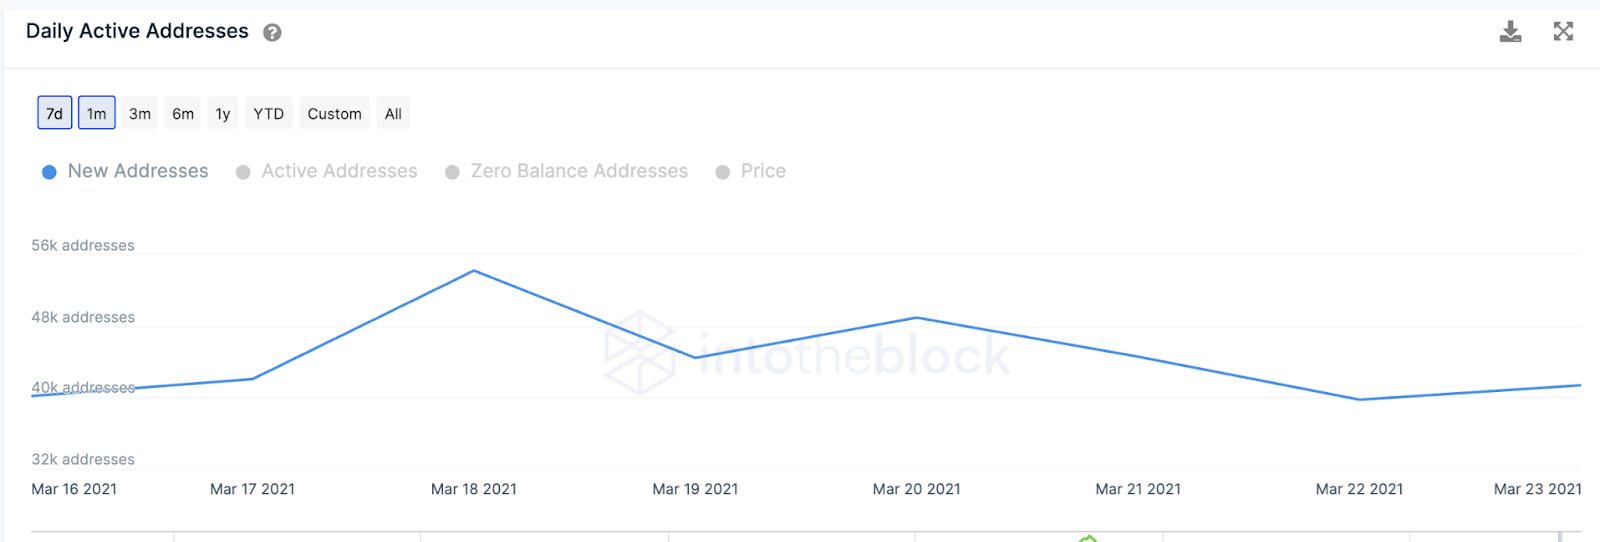 Daily Active Addresses